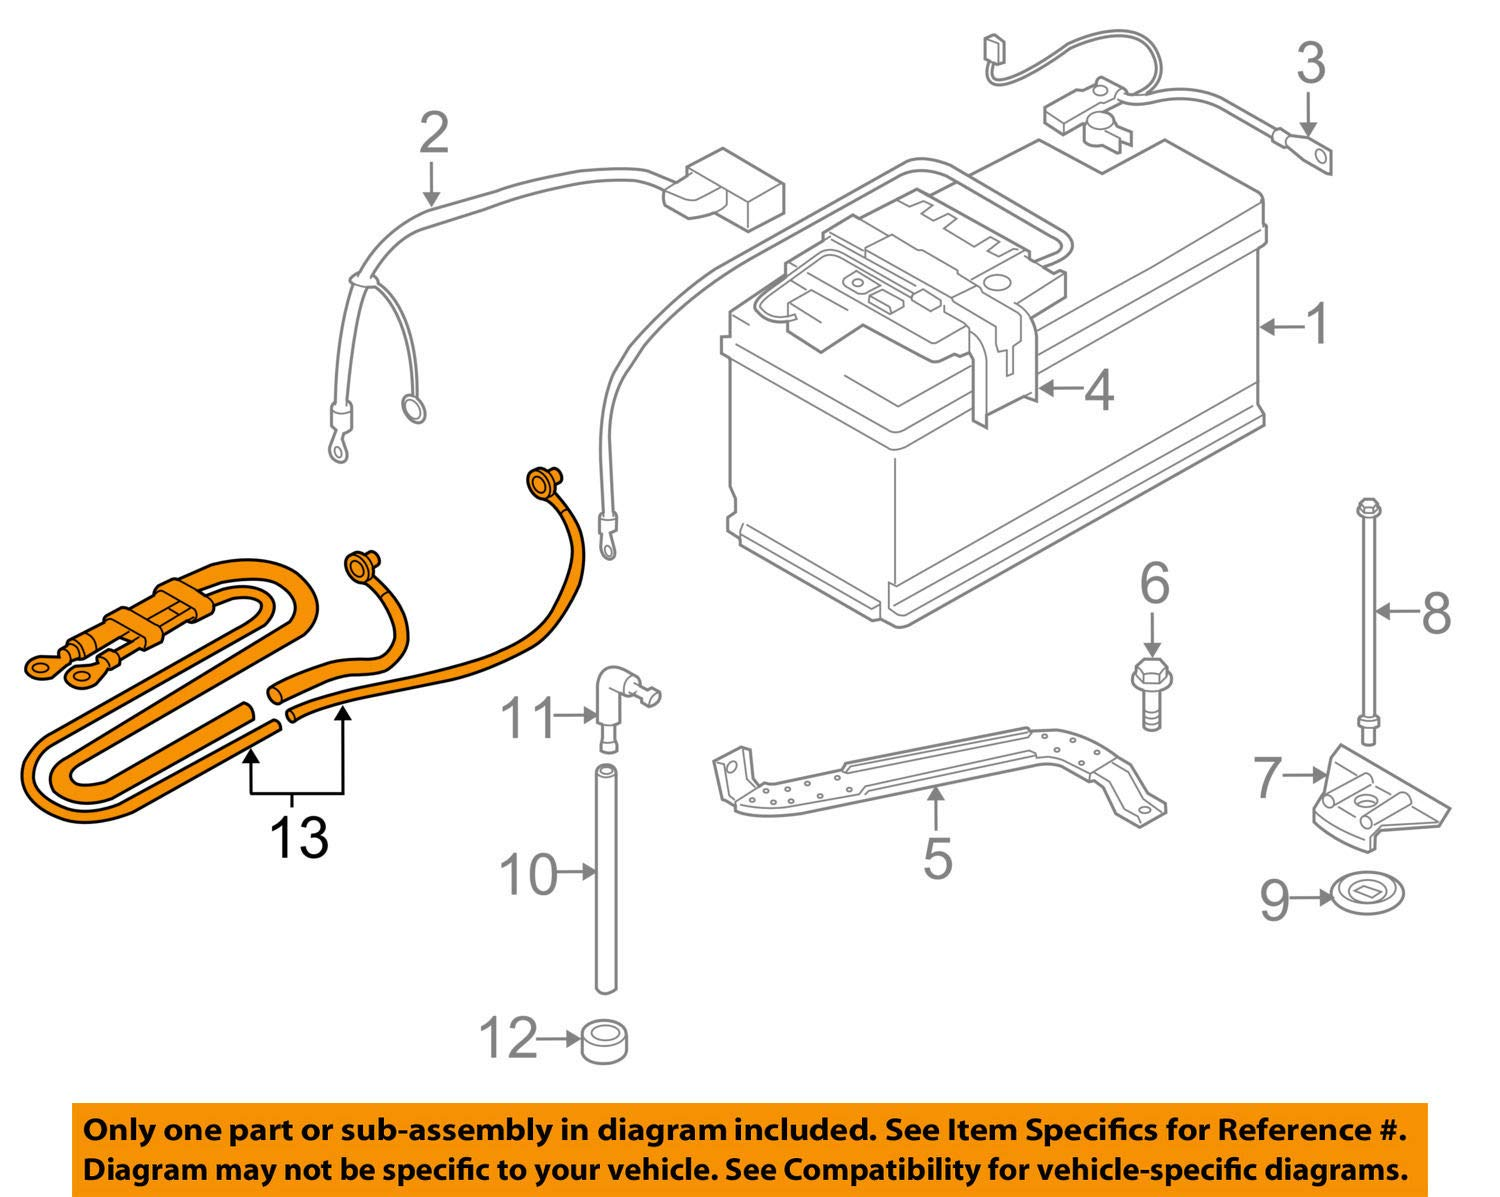 GENUINE BMW Battery Cable - Positive - Dual Cable from Positive Battery Leads 61129125036